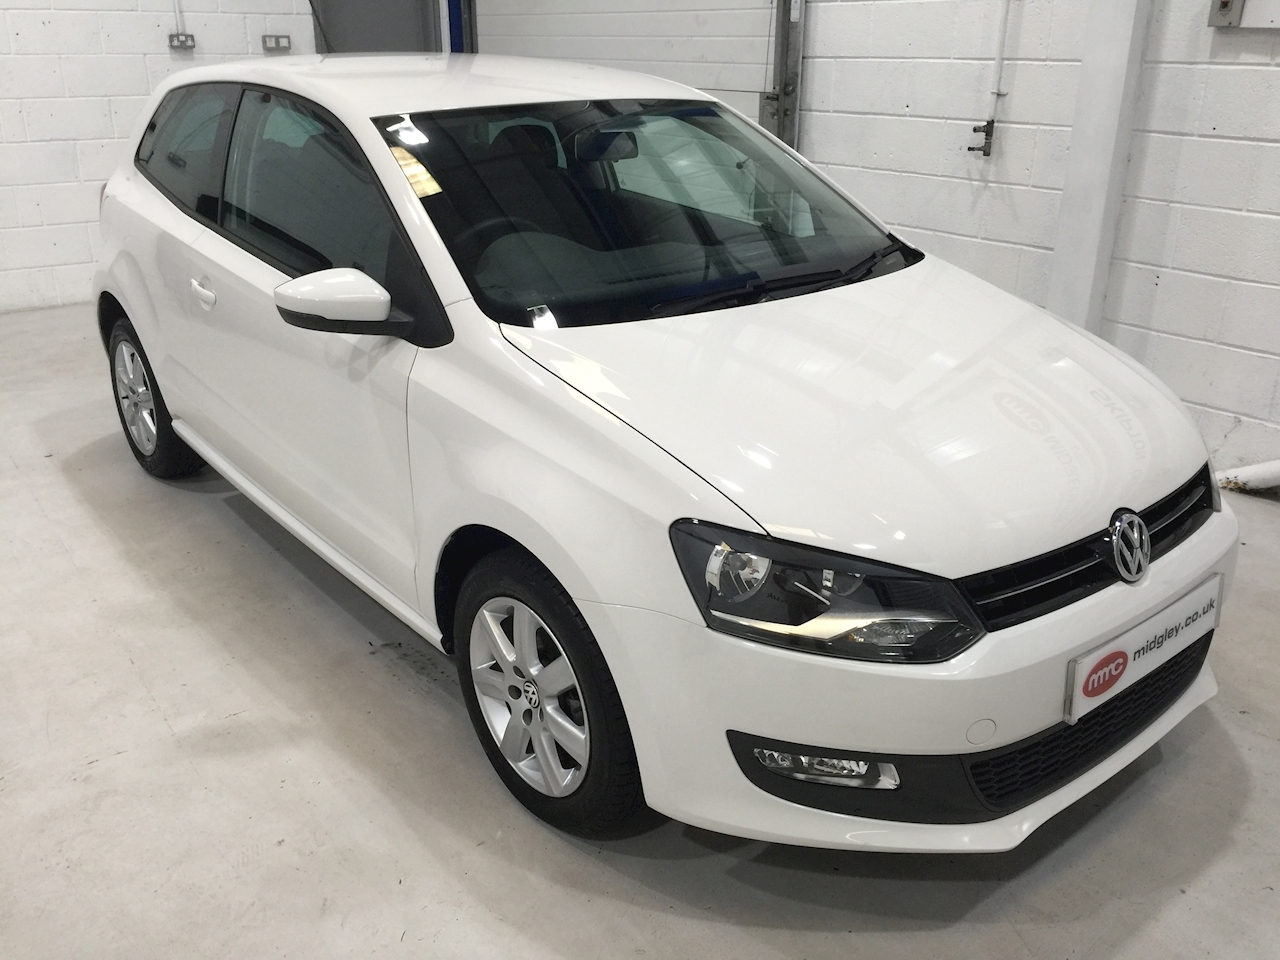 Volkswagen Polo Match Edition Hatchback 1.4 DSG Petrol 3 Door